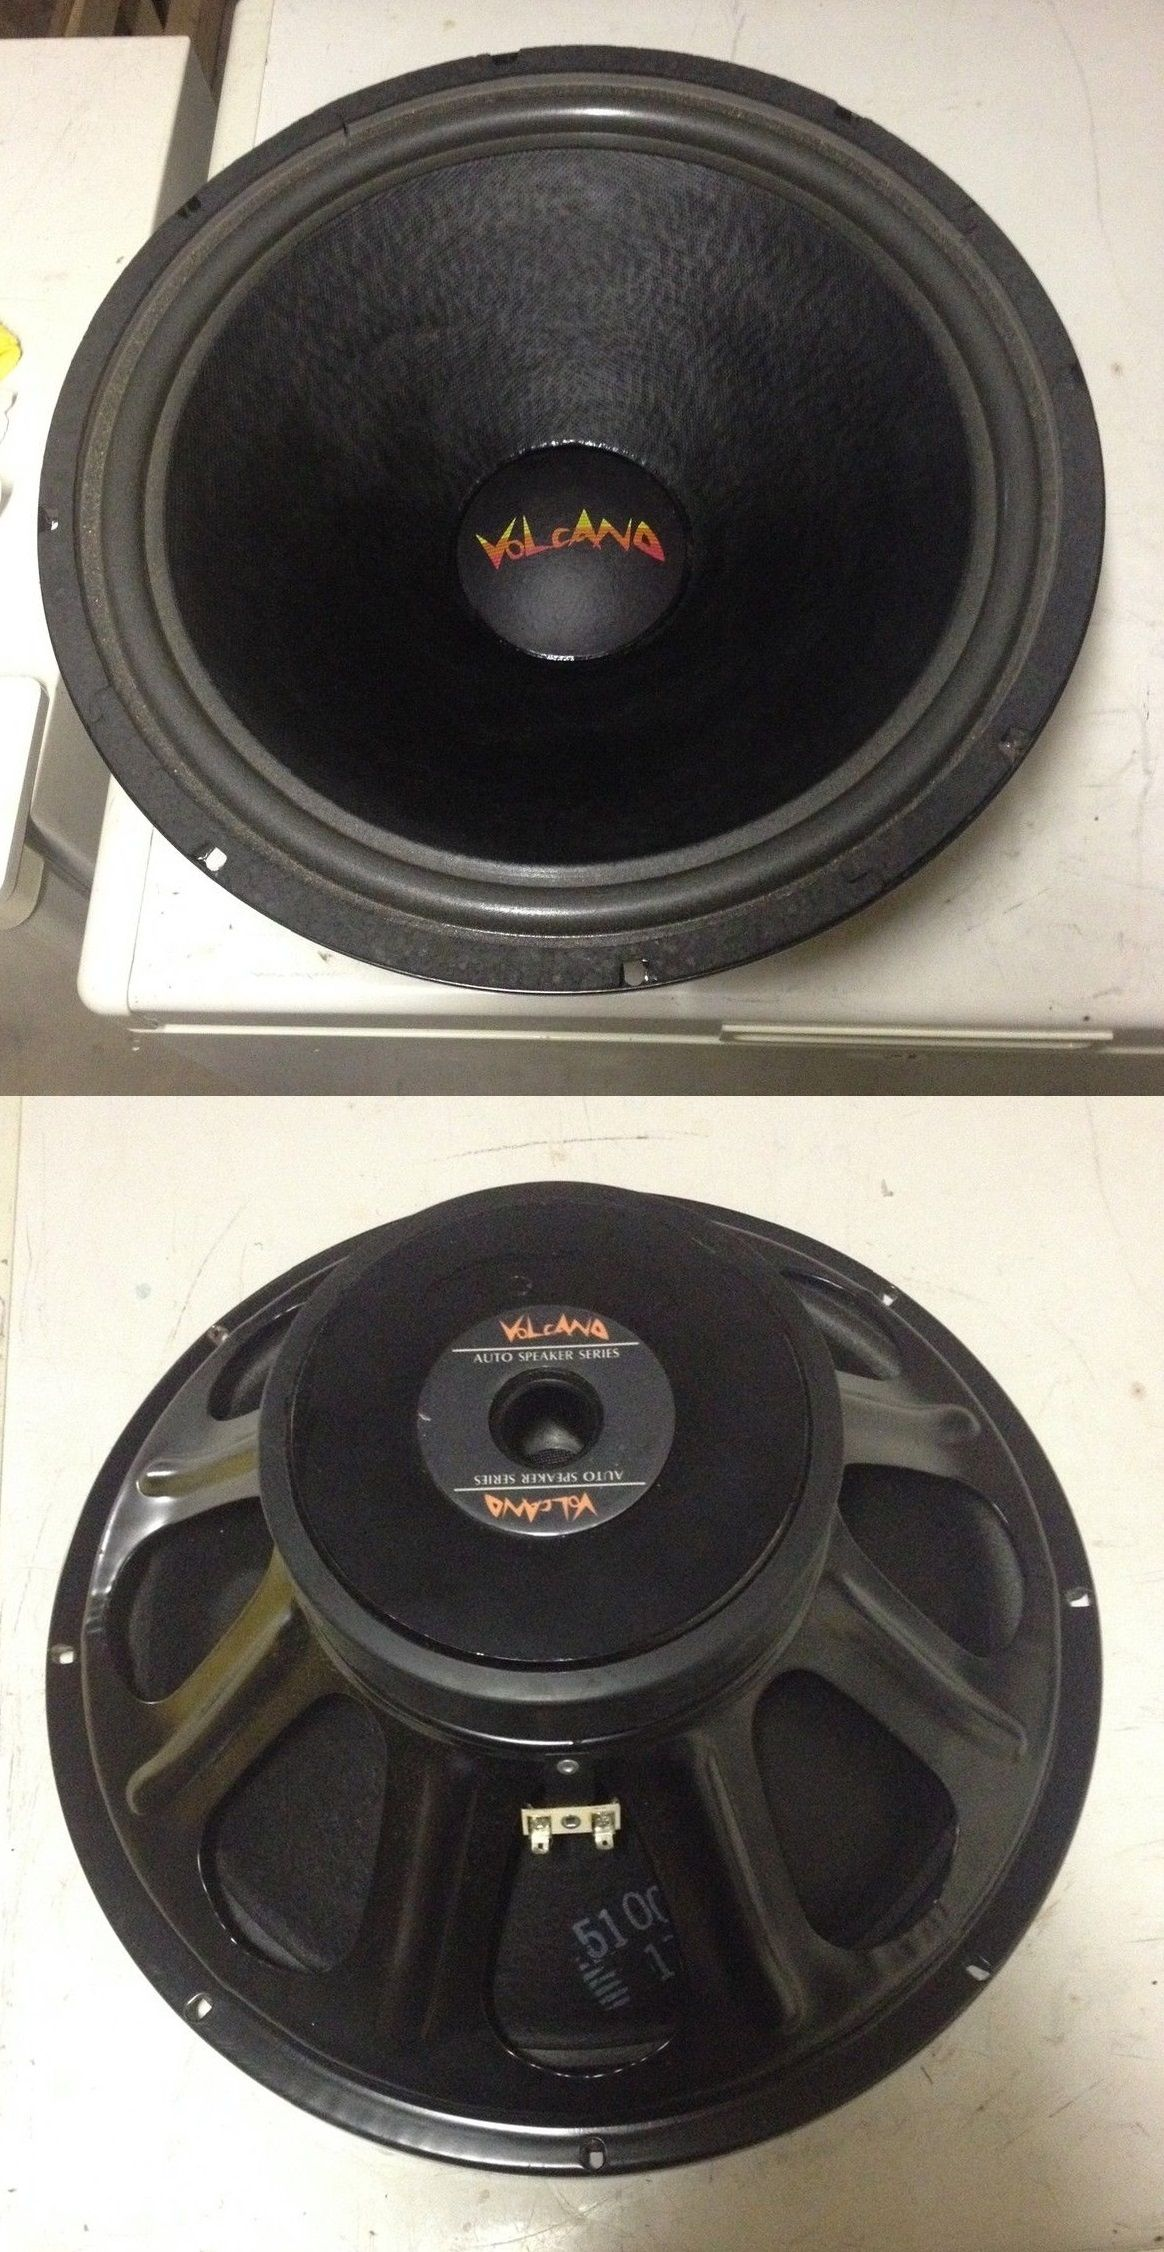 Volcano 15s200g 15 Inch Subwoofer Made In Kentucky Usa Car Audio Stereo Kit 800w Sub 500w 2 Channel Amplifier Capacitor Wiring